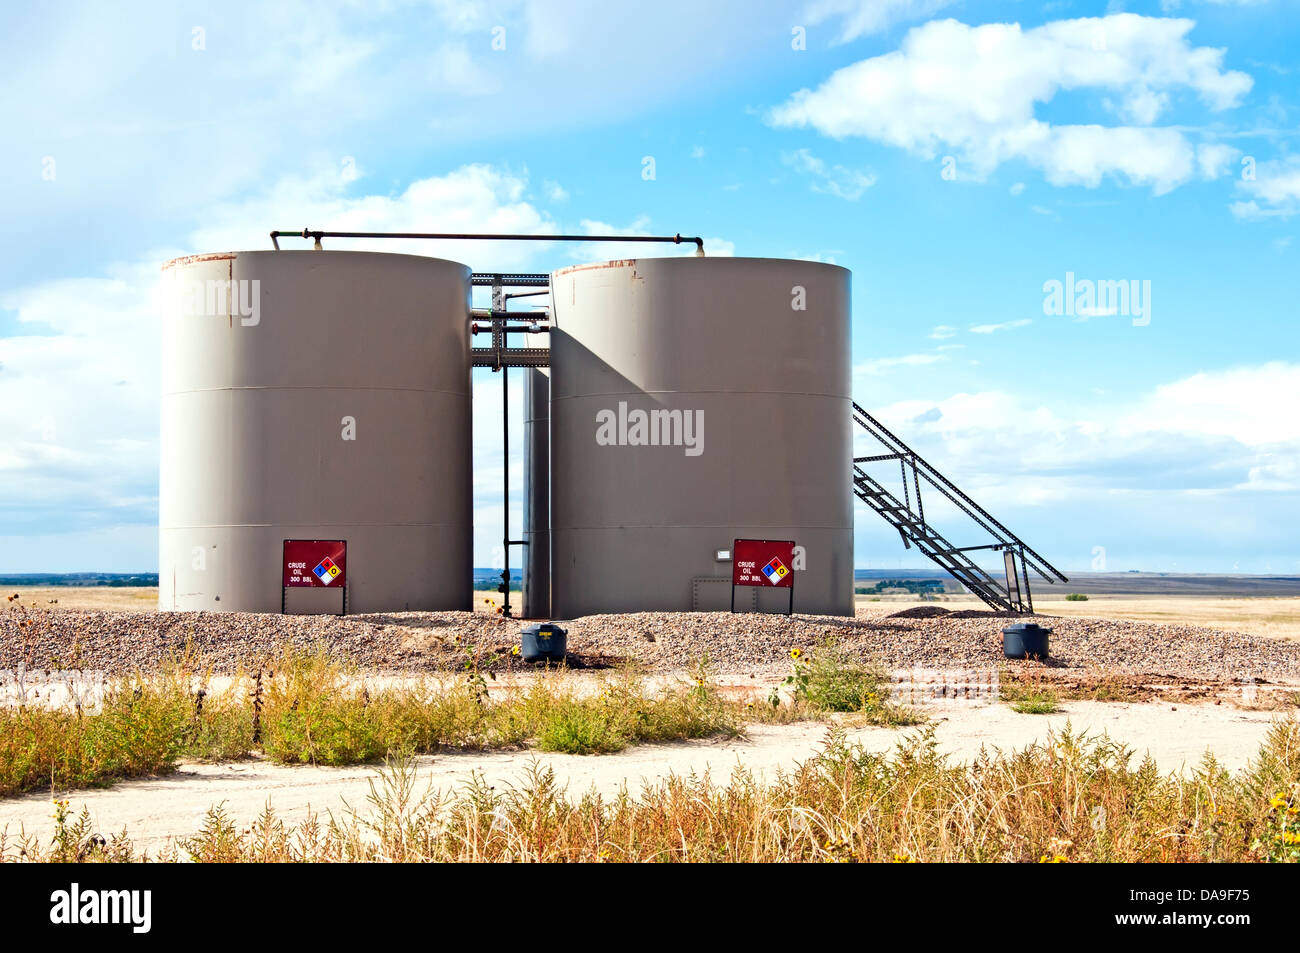 Oilfield tanks and equipment used to pump and store crude